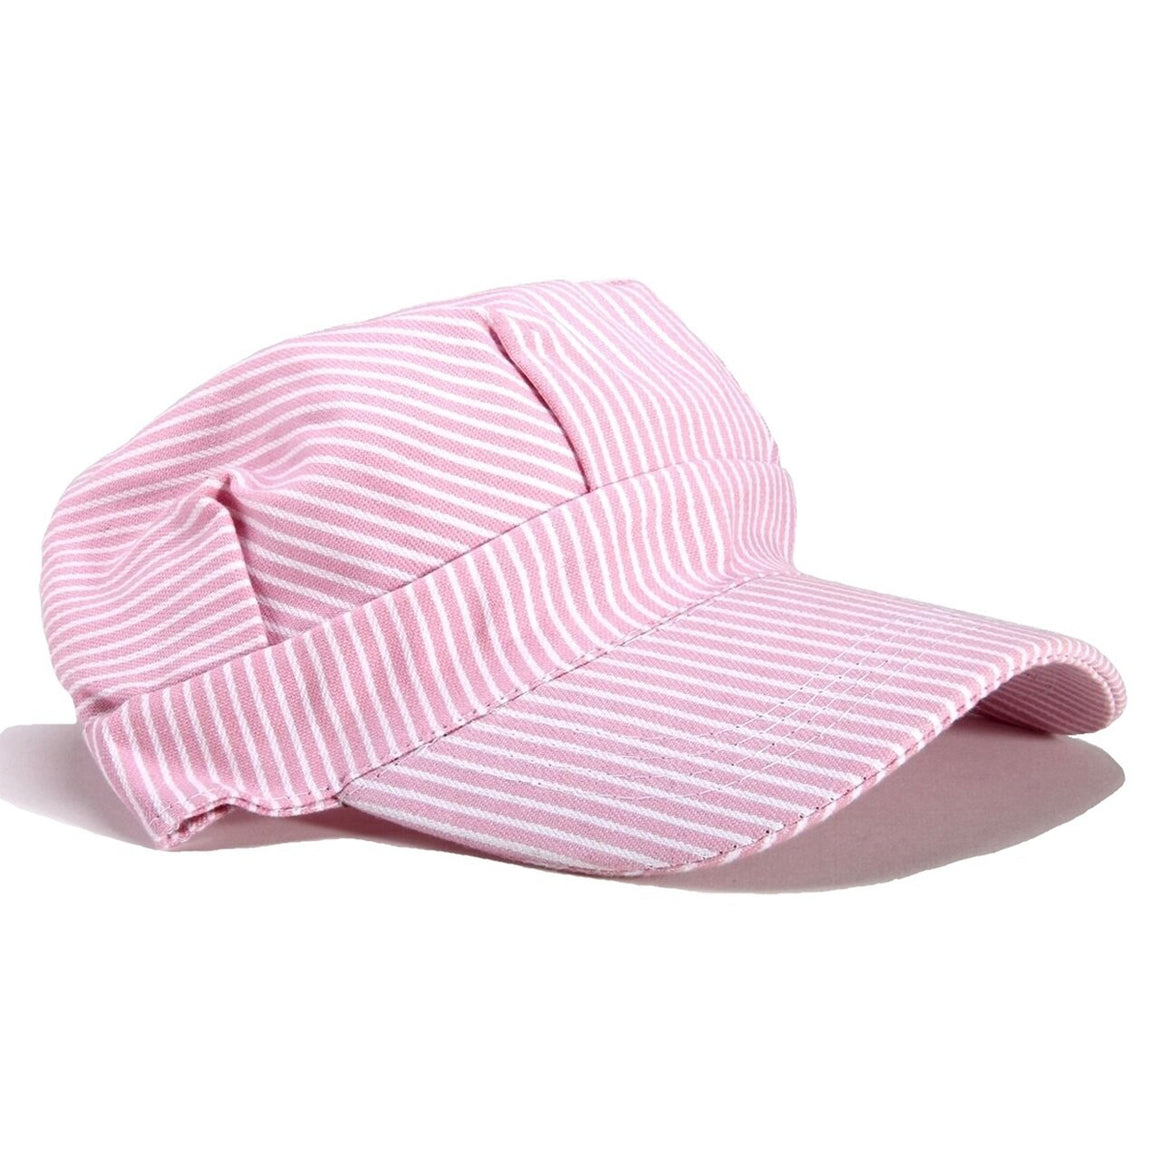 Hat: Adult Engineer Cap - Pink